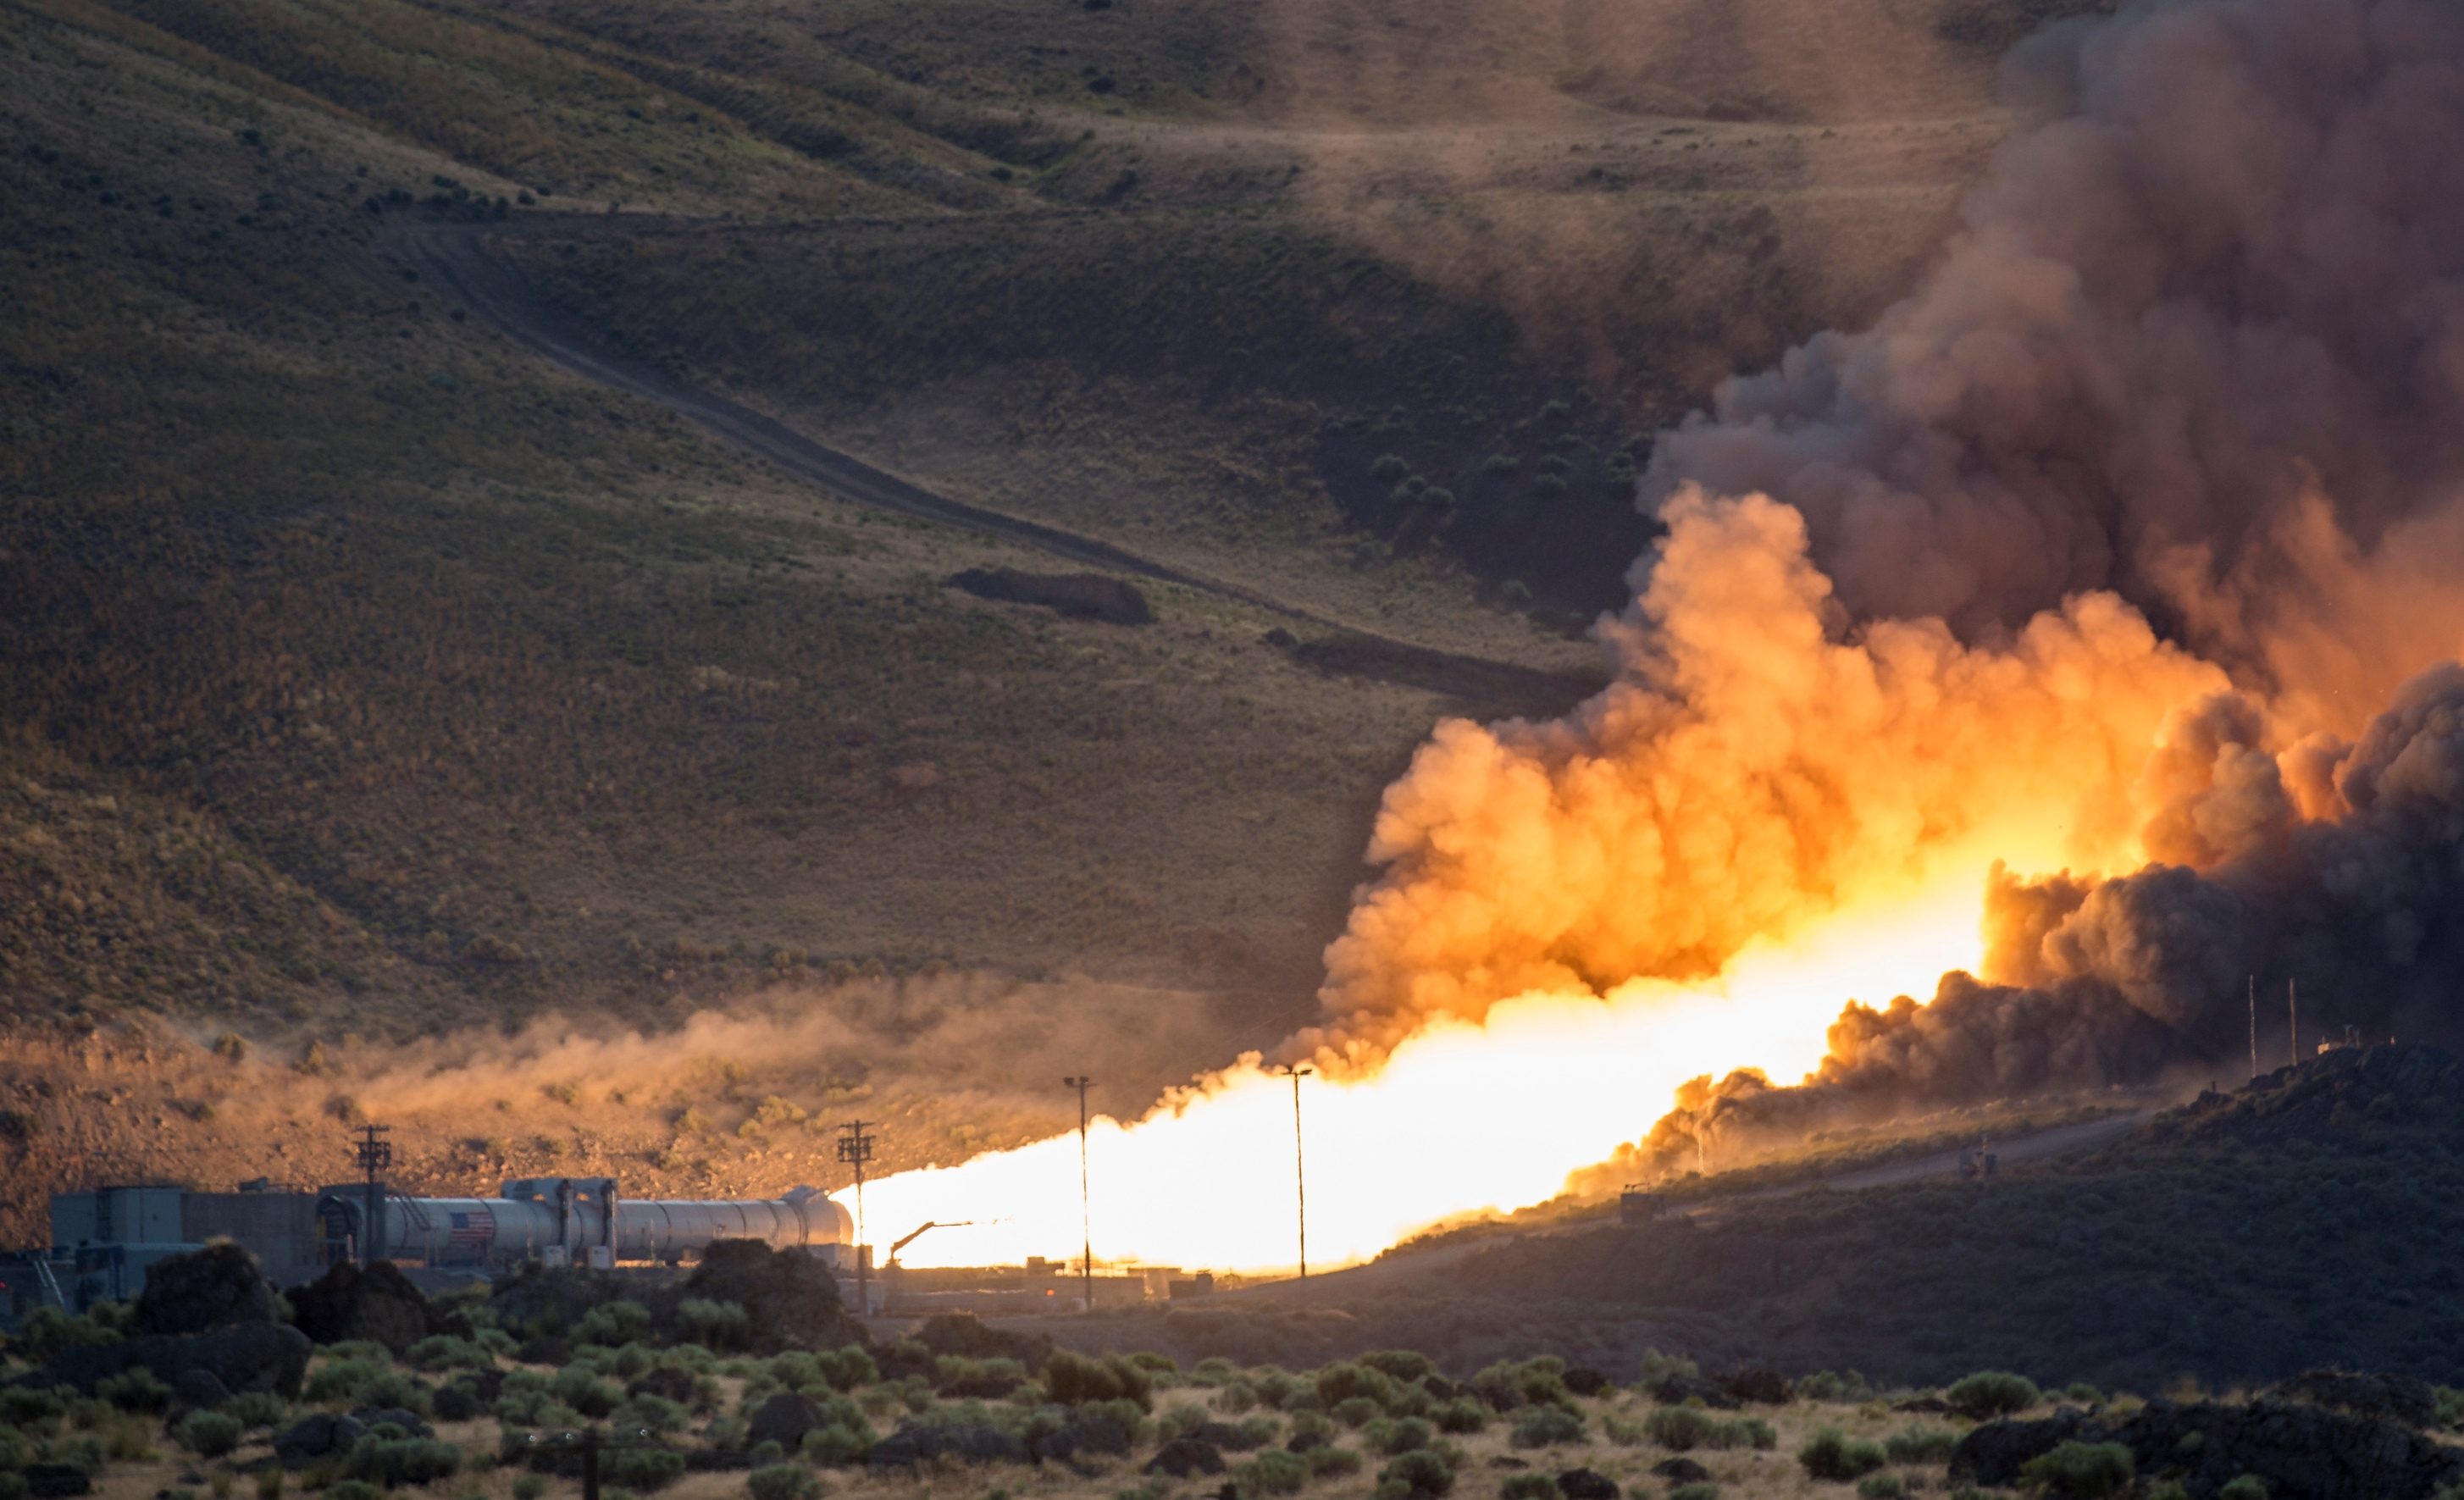 QM-2 test of NASA SLS solid rocket booster in Promontory, Utah